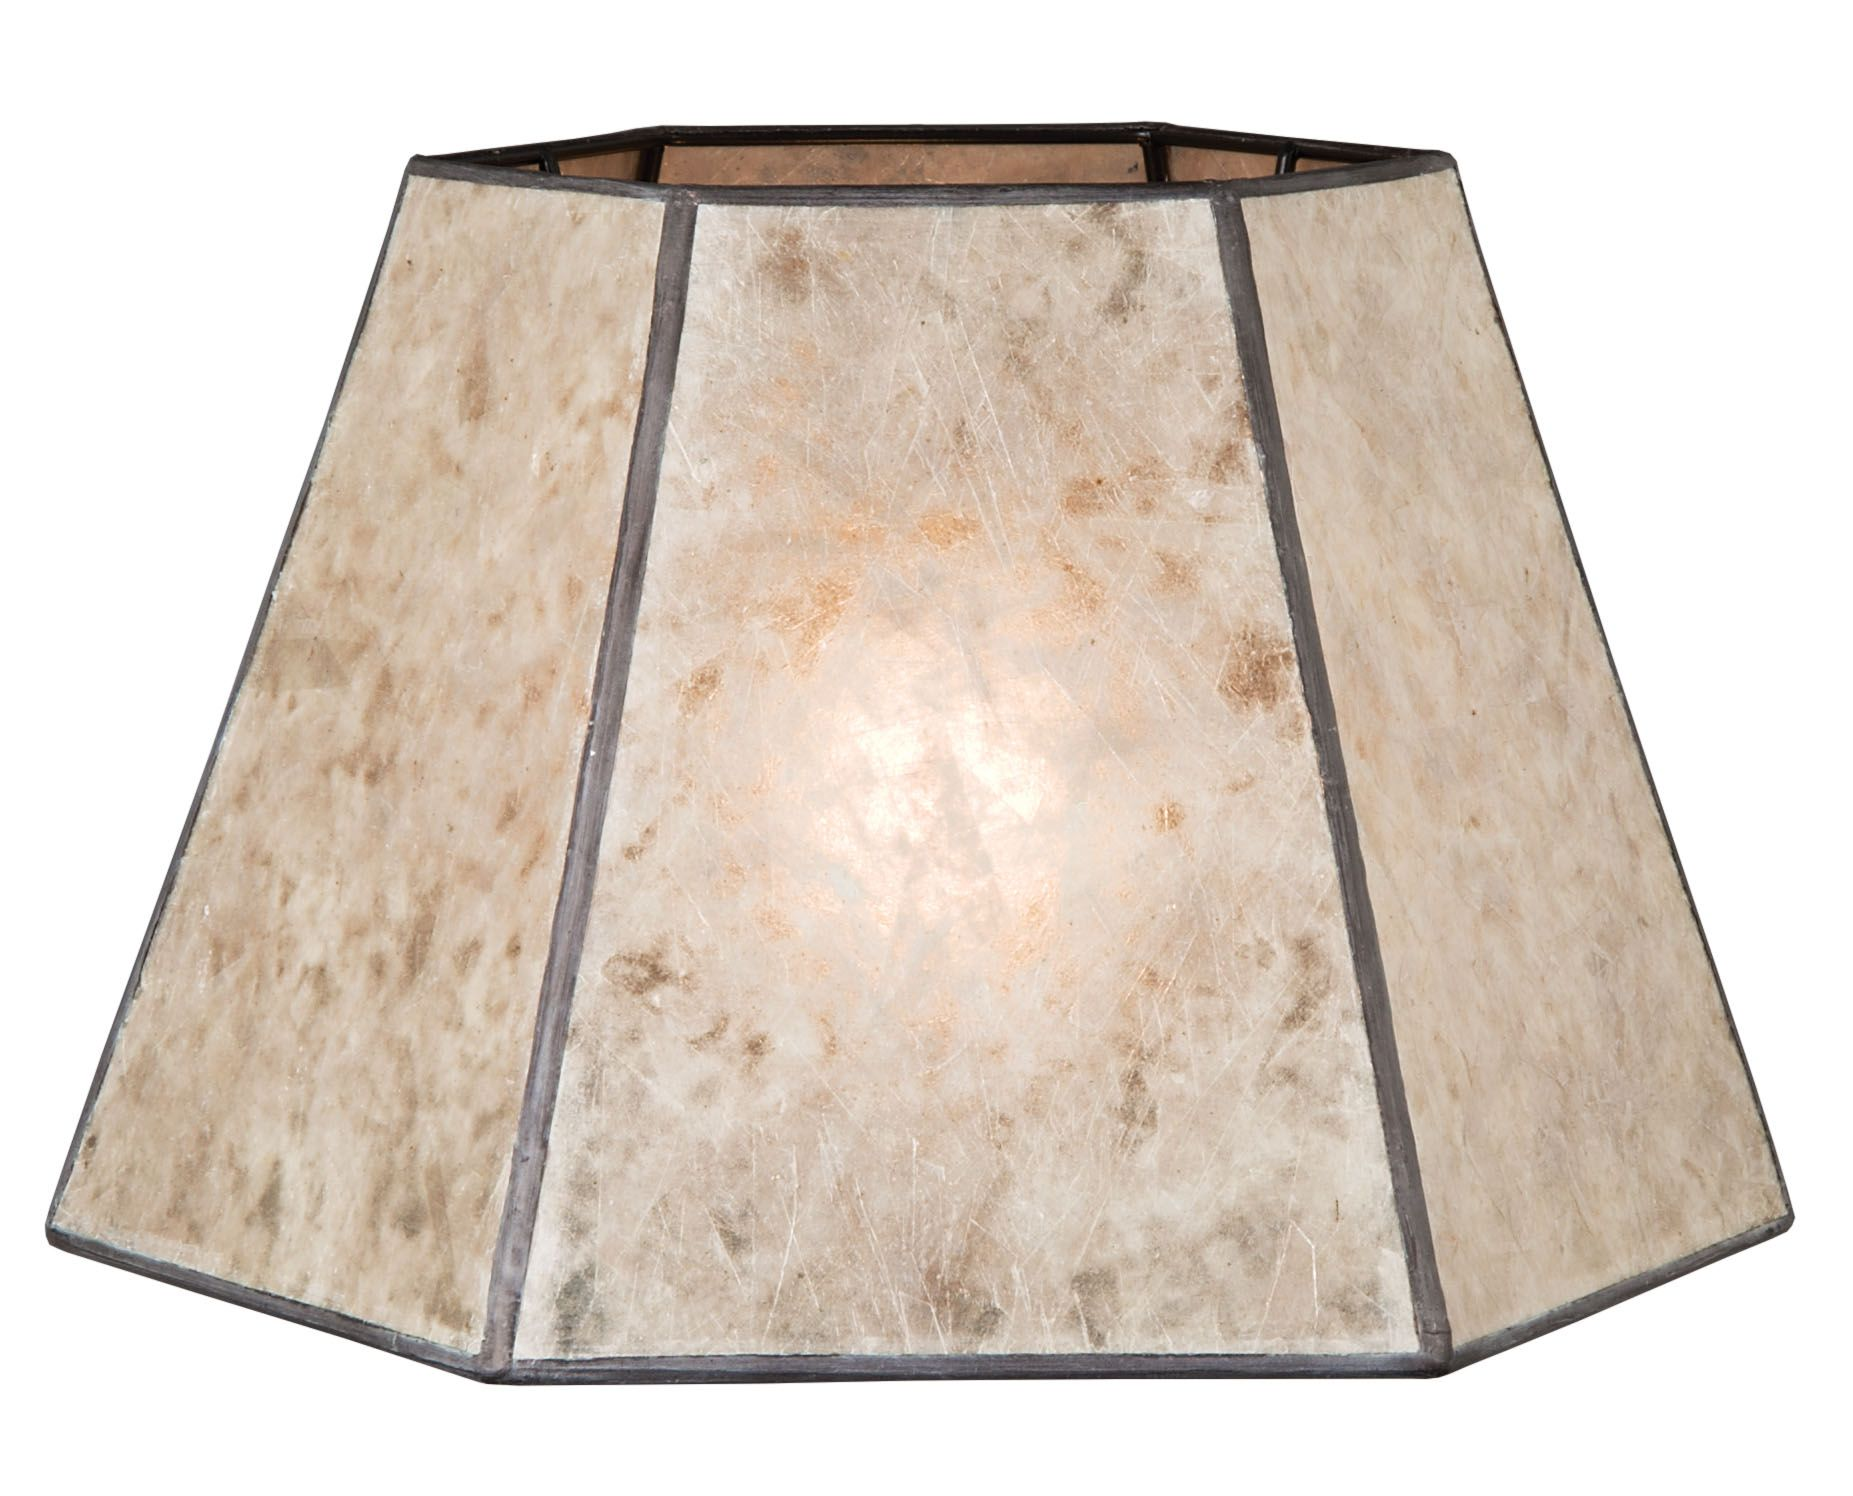 Mica Lamp Shade Enchanting Parchment Color Hexagon Style Mica Lampshade  Antique Lamp Supply Design Inspiration